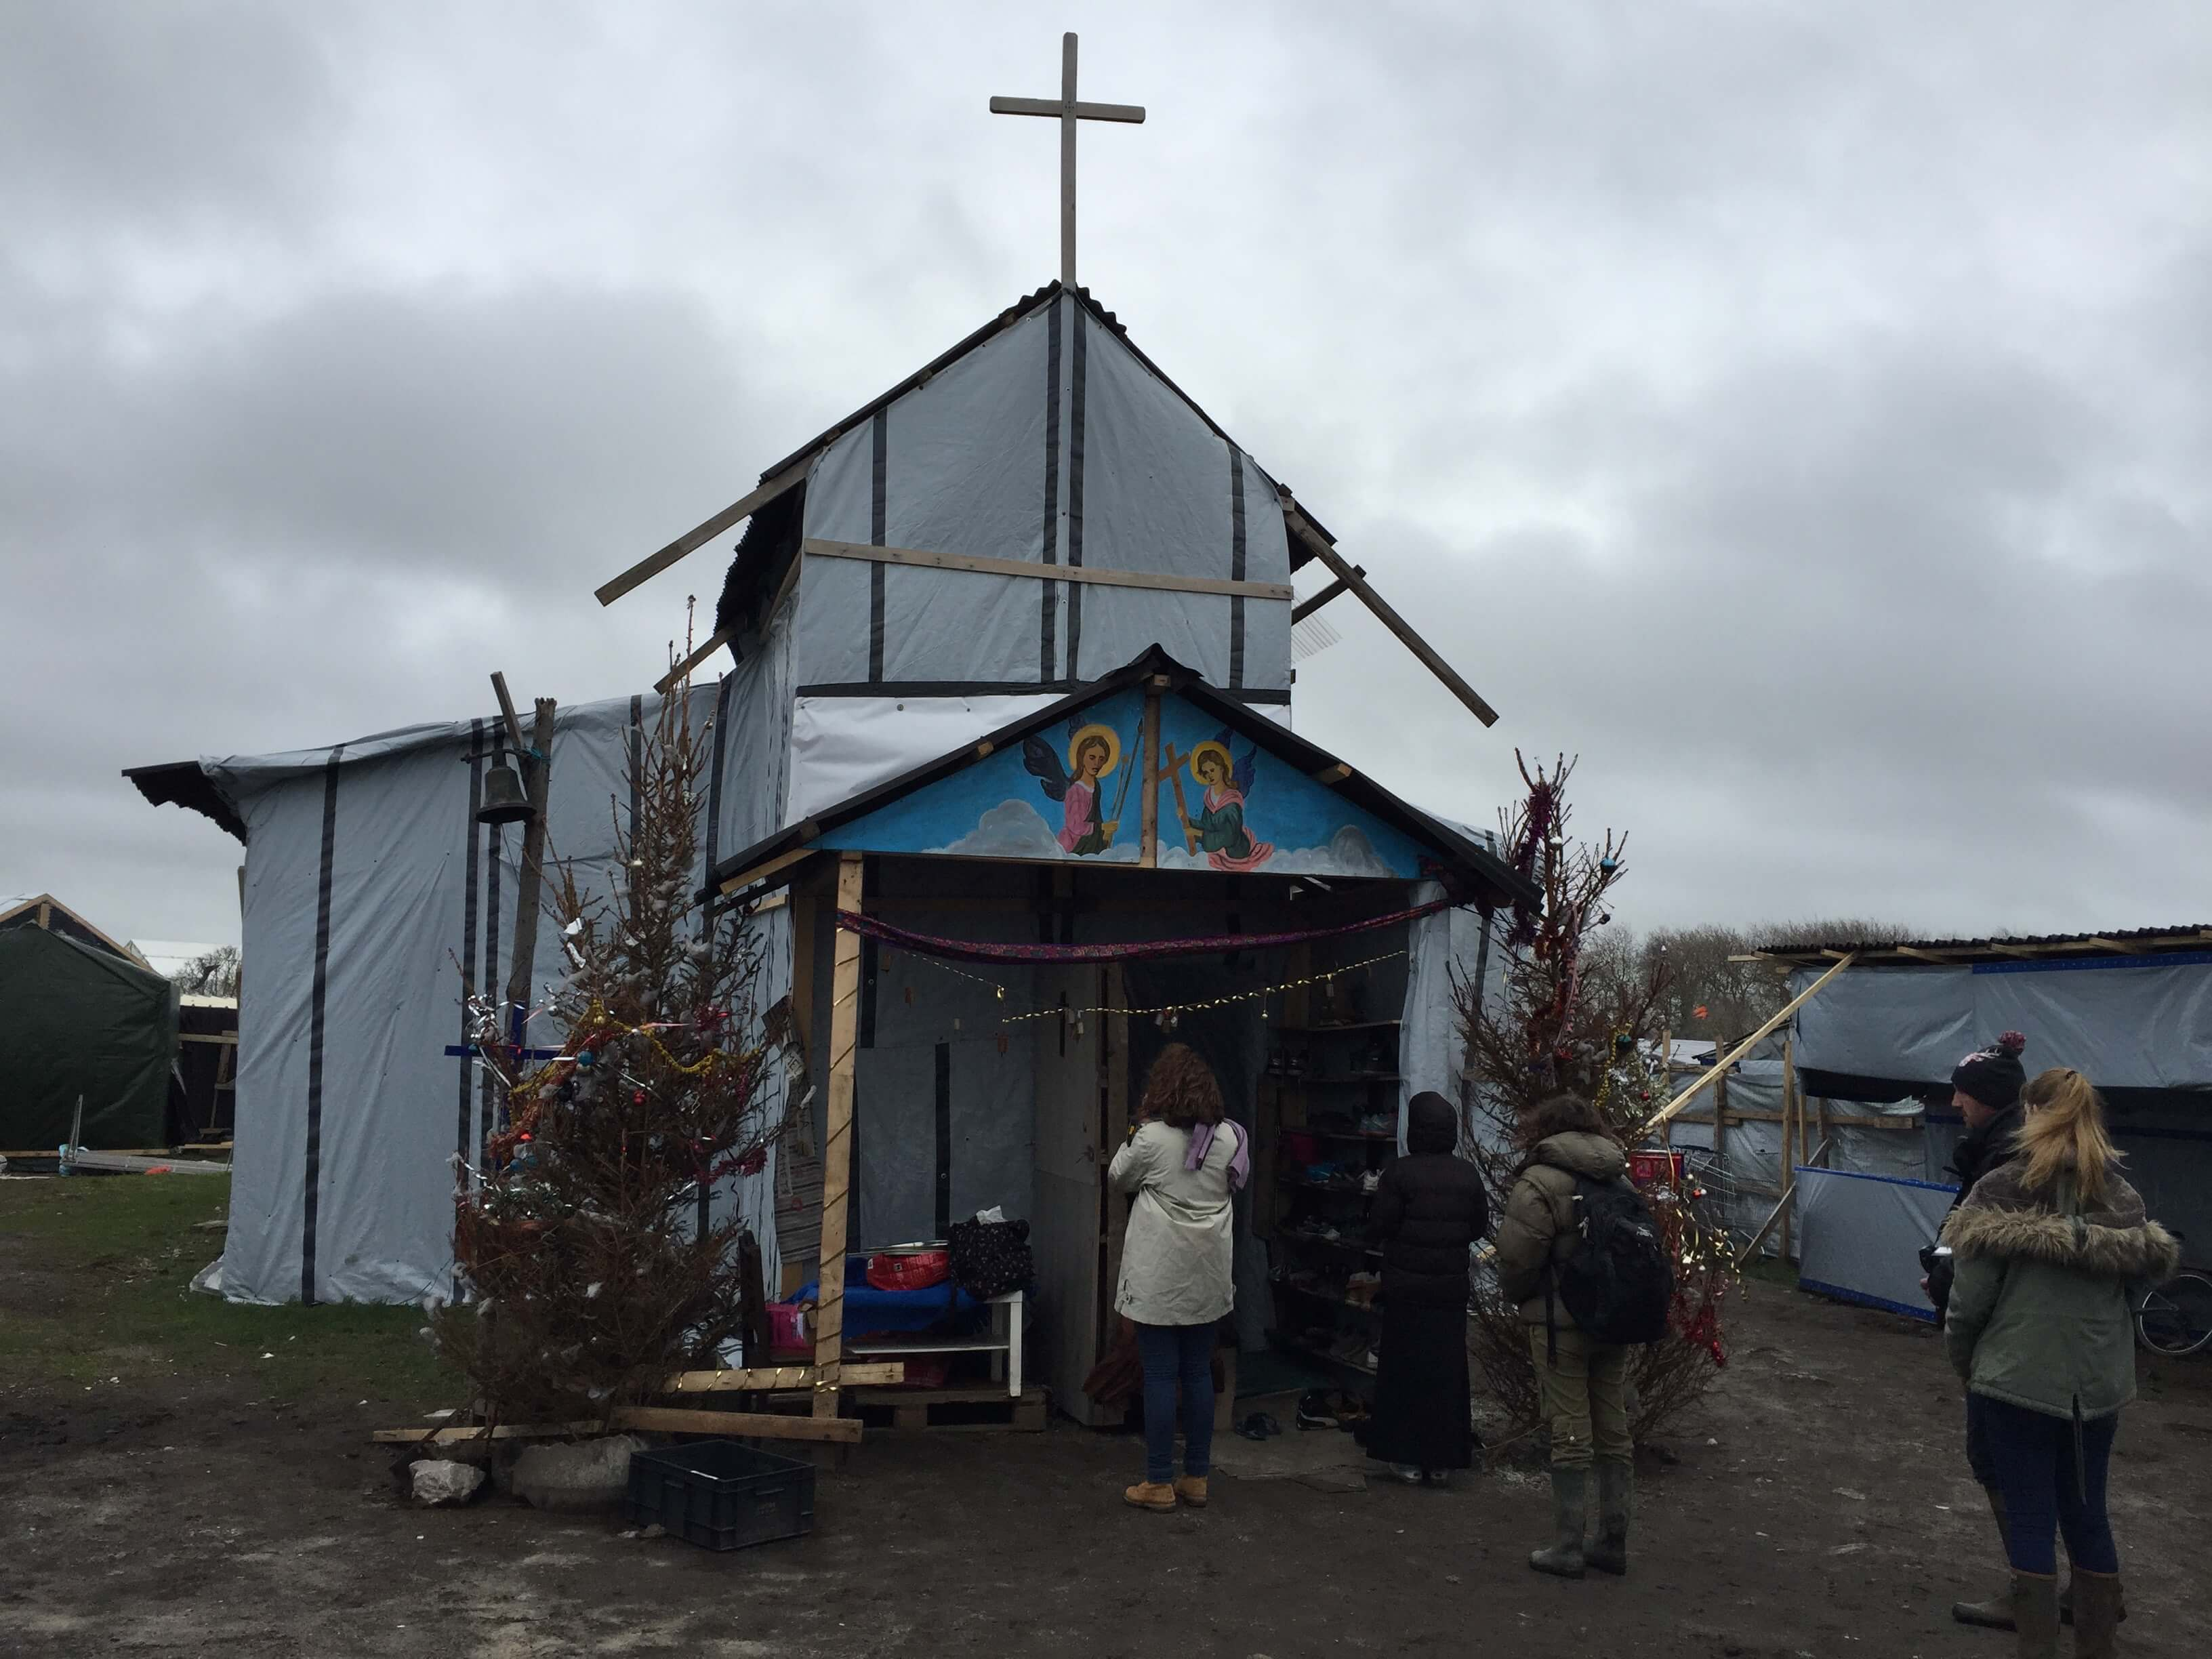 Kerk in de Jungle van Calais